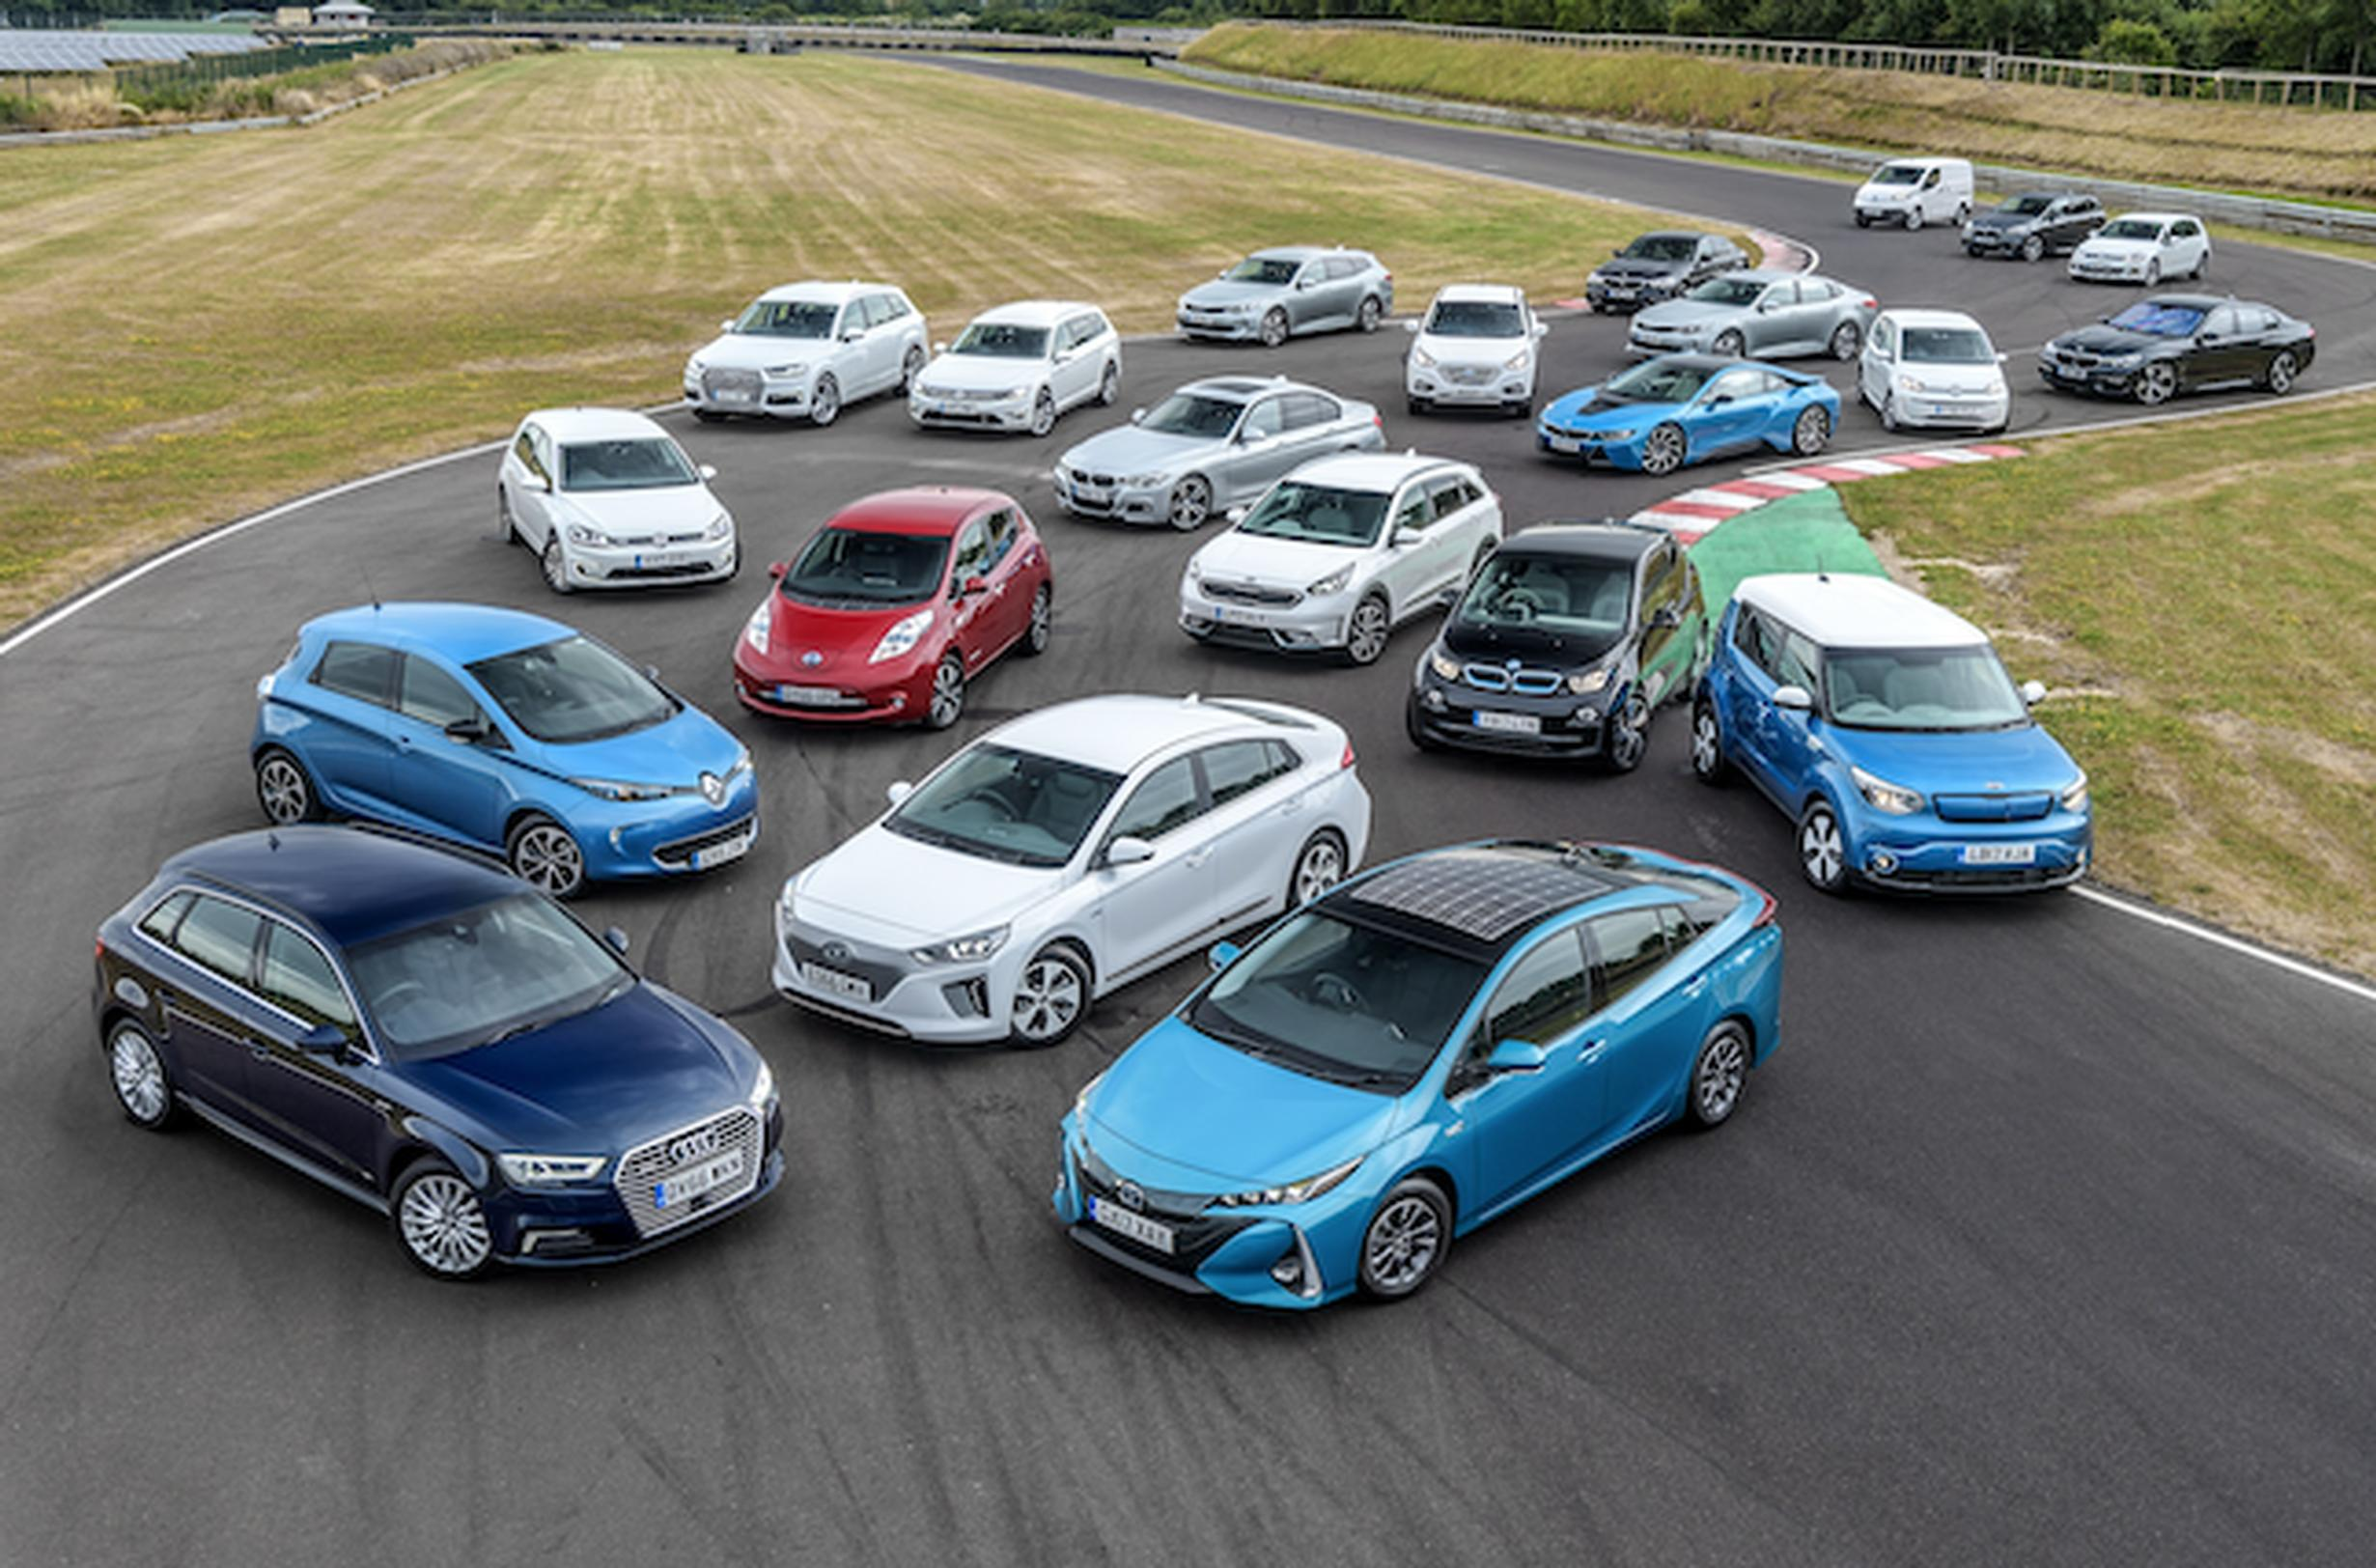 A selection of electric vehicles currently on the market in the UK